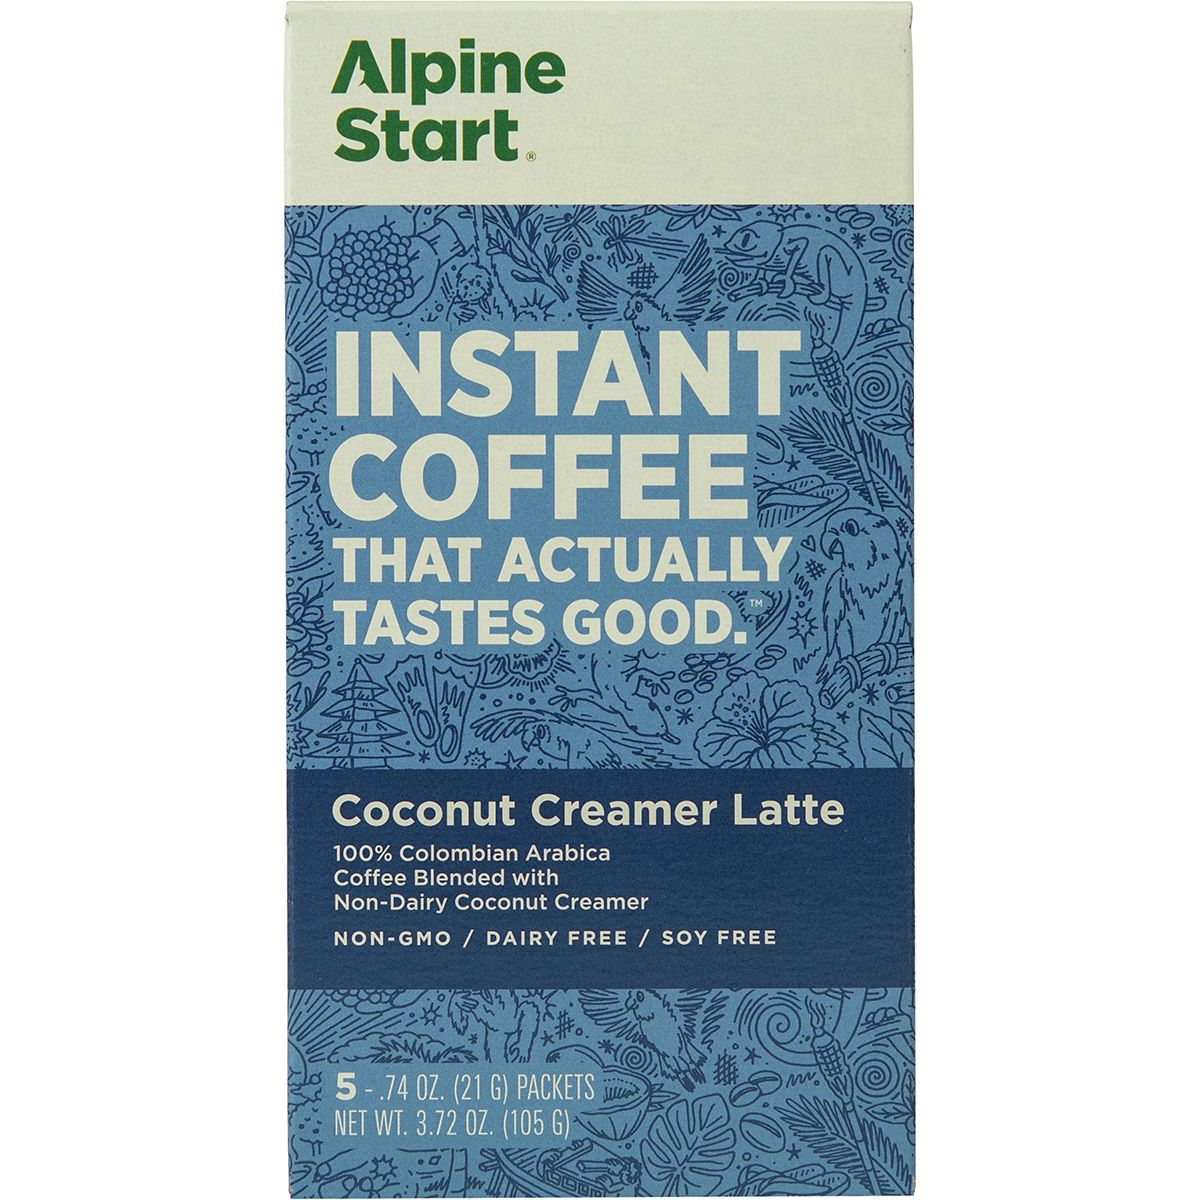 Alpine Start Coconut Creamer Latte